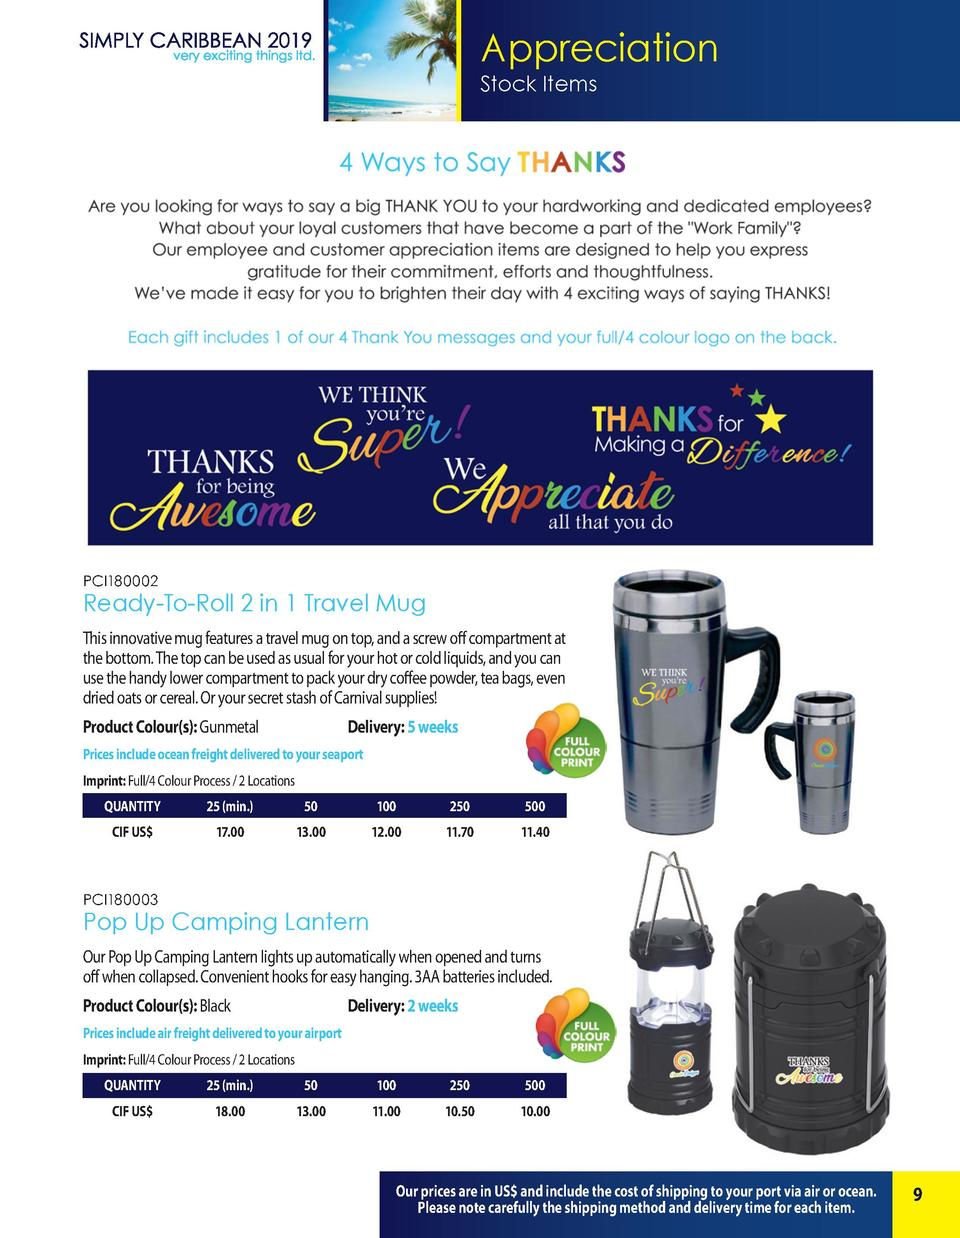 Appreciation Stock Items  PCI180002  Ready-To-Roll 2 in 1 Travel Mug This innovative mug features a travel mug on top, and...